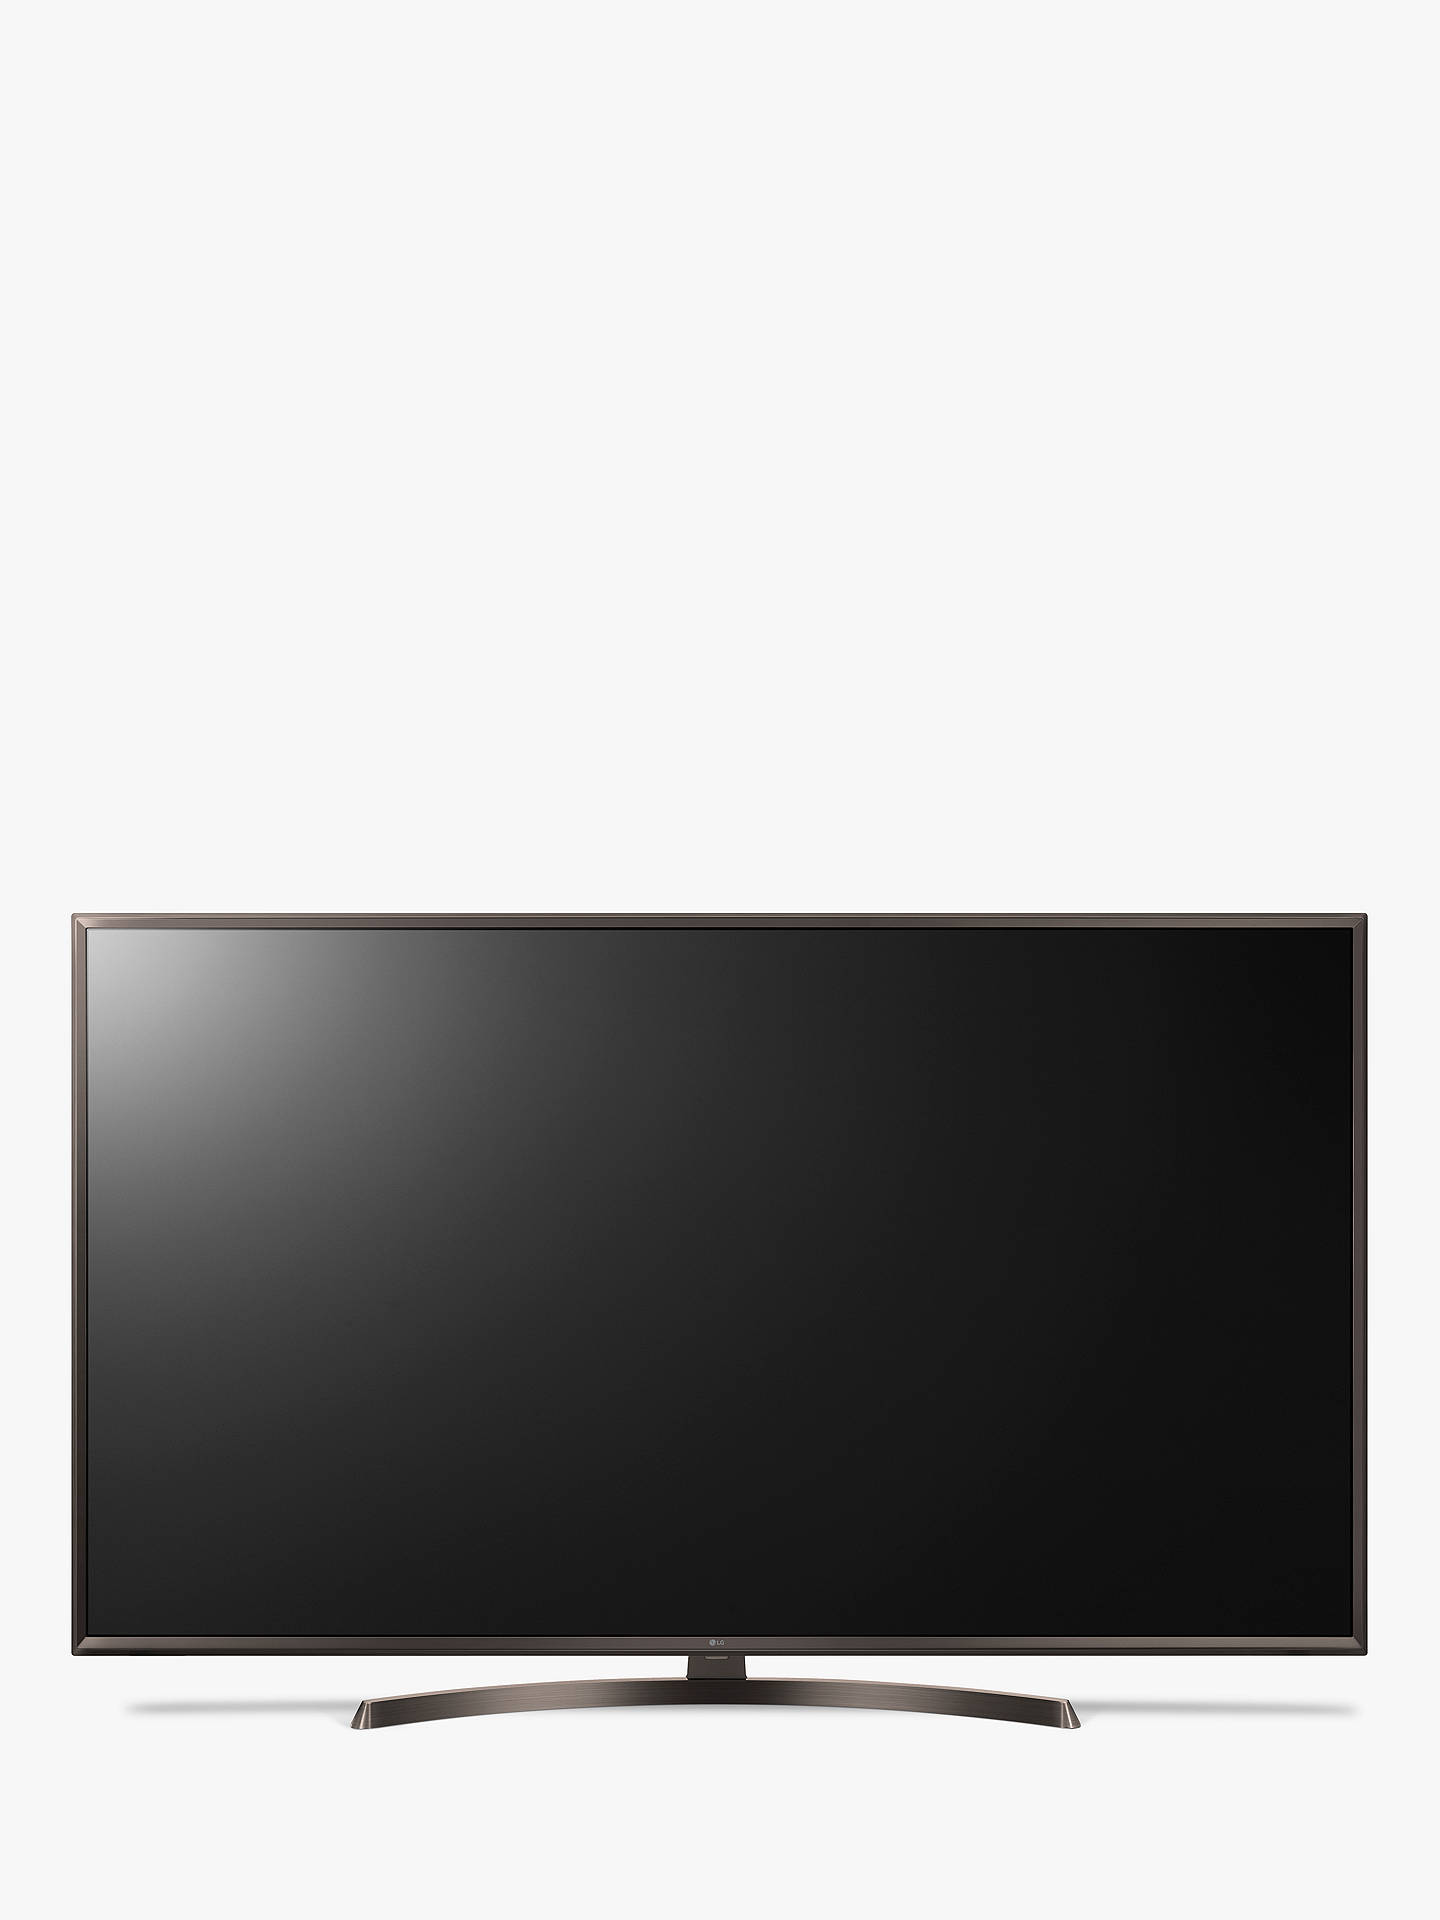 "BuyLG 65UK6400PLF LED HDR 4K Ultra HD Smart TV, 65"" with Freeview Play/Freesat HD & Crescent Stand, Ultra HD Certified, Metallic Bronze Online at johnlewis.com"